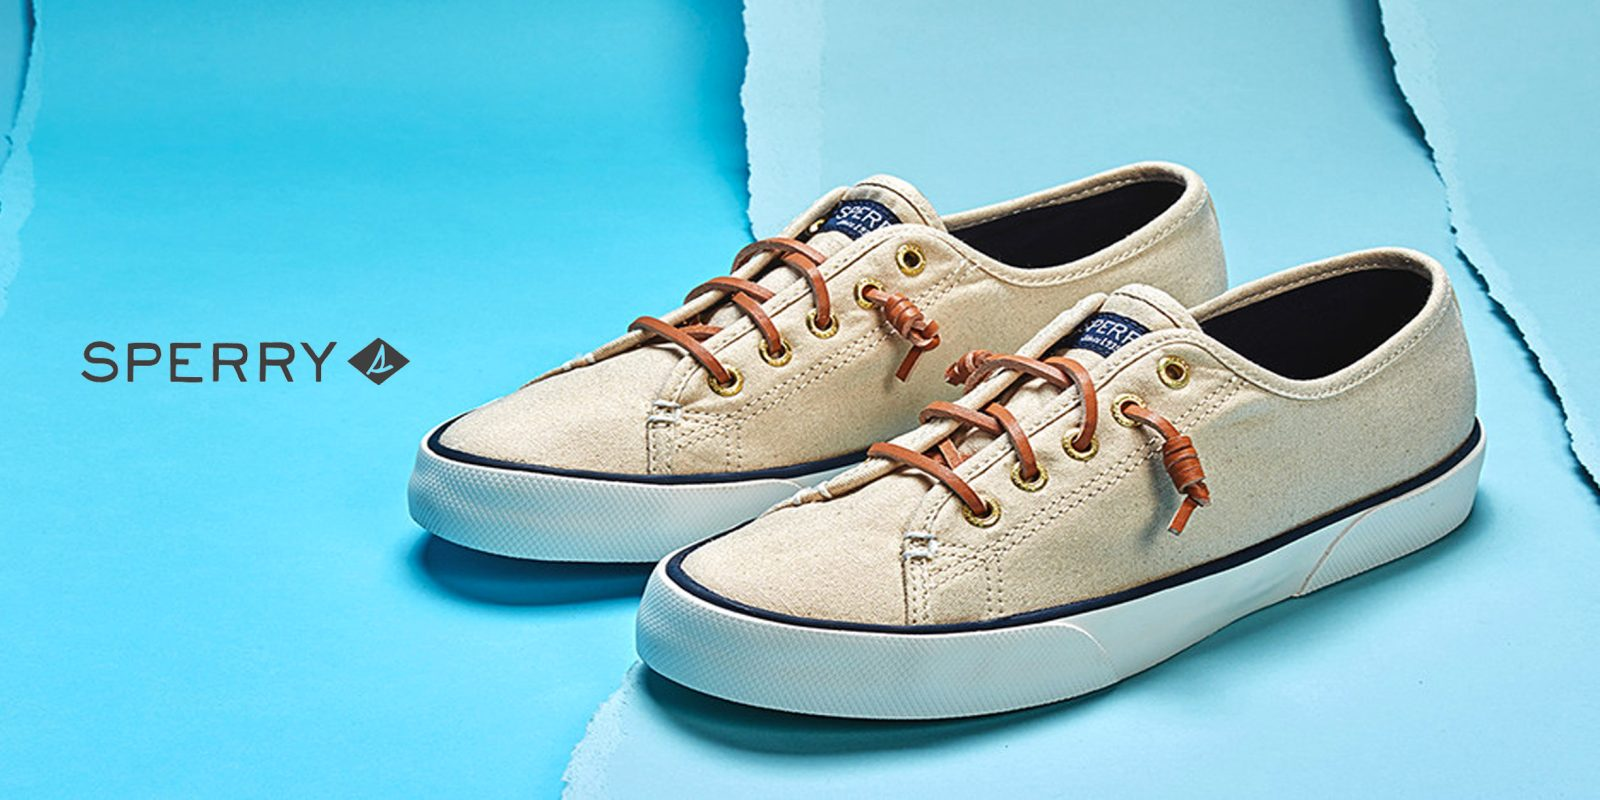 c94de4a201 Famous Footwear offers BOGO 50% off all clearance shoes  Sperry ...